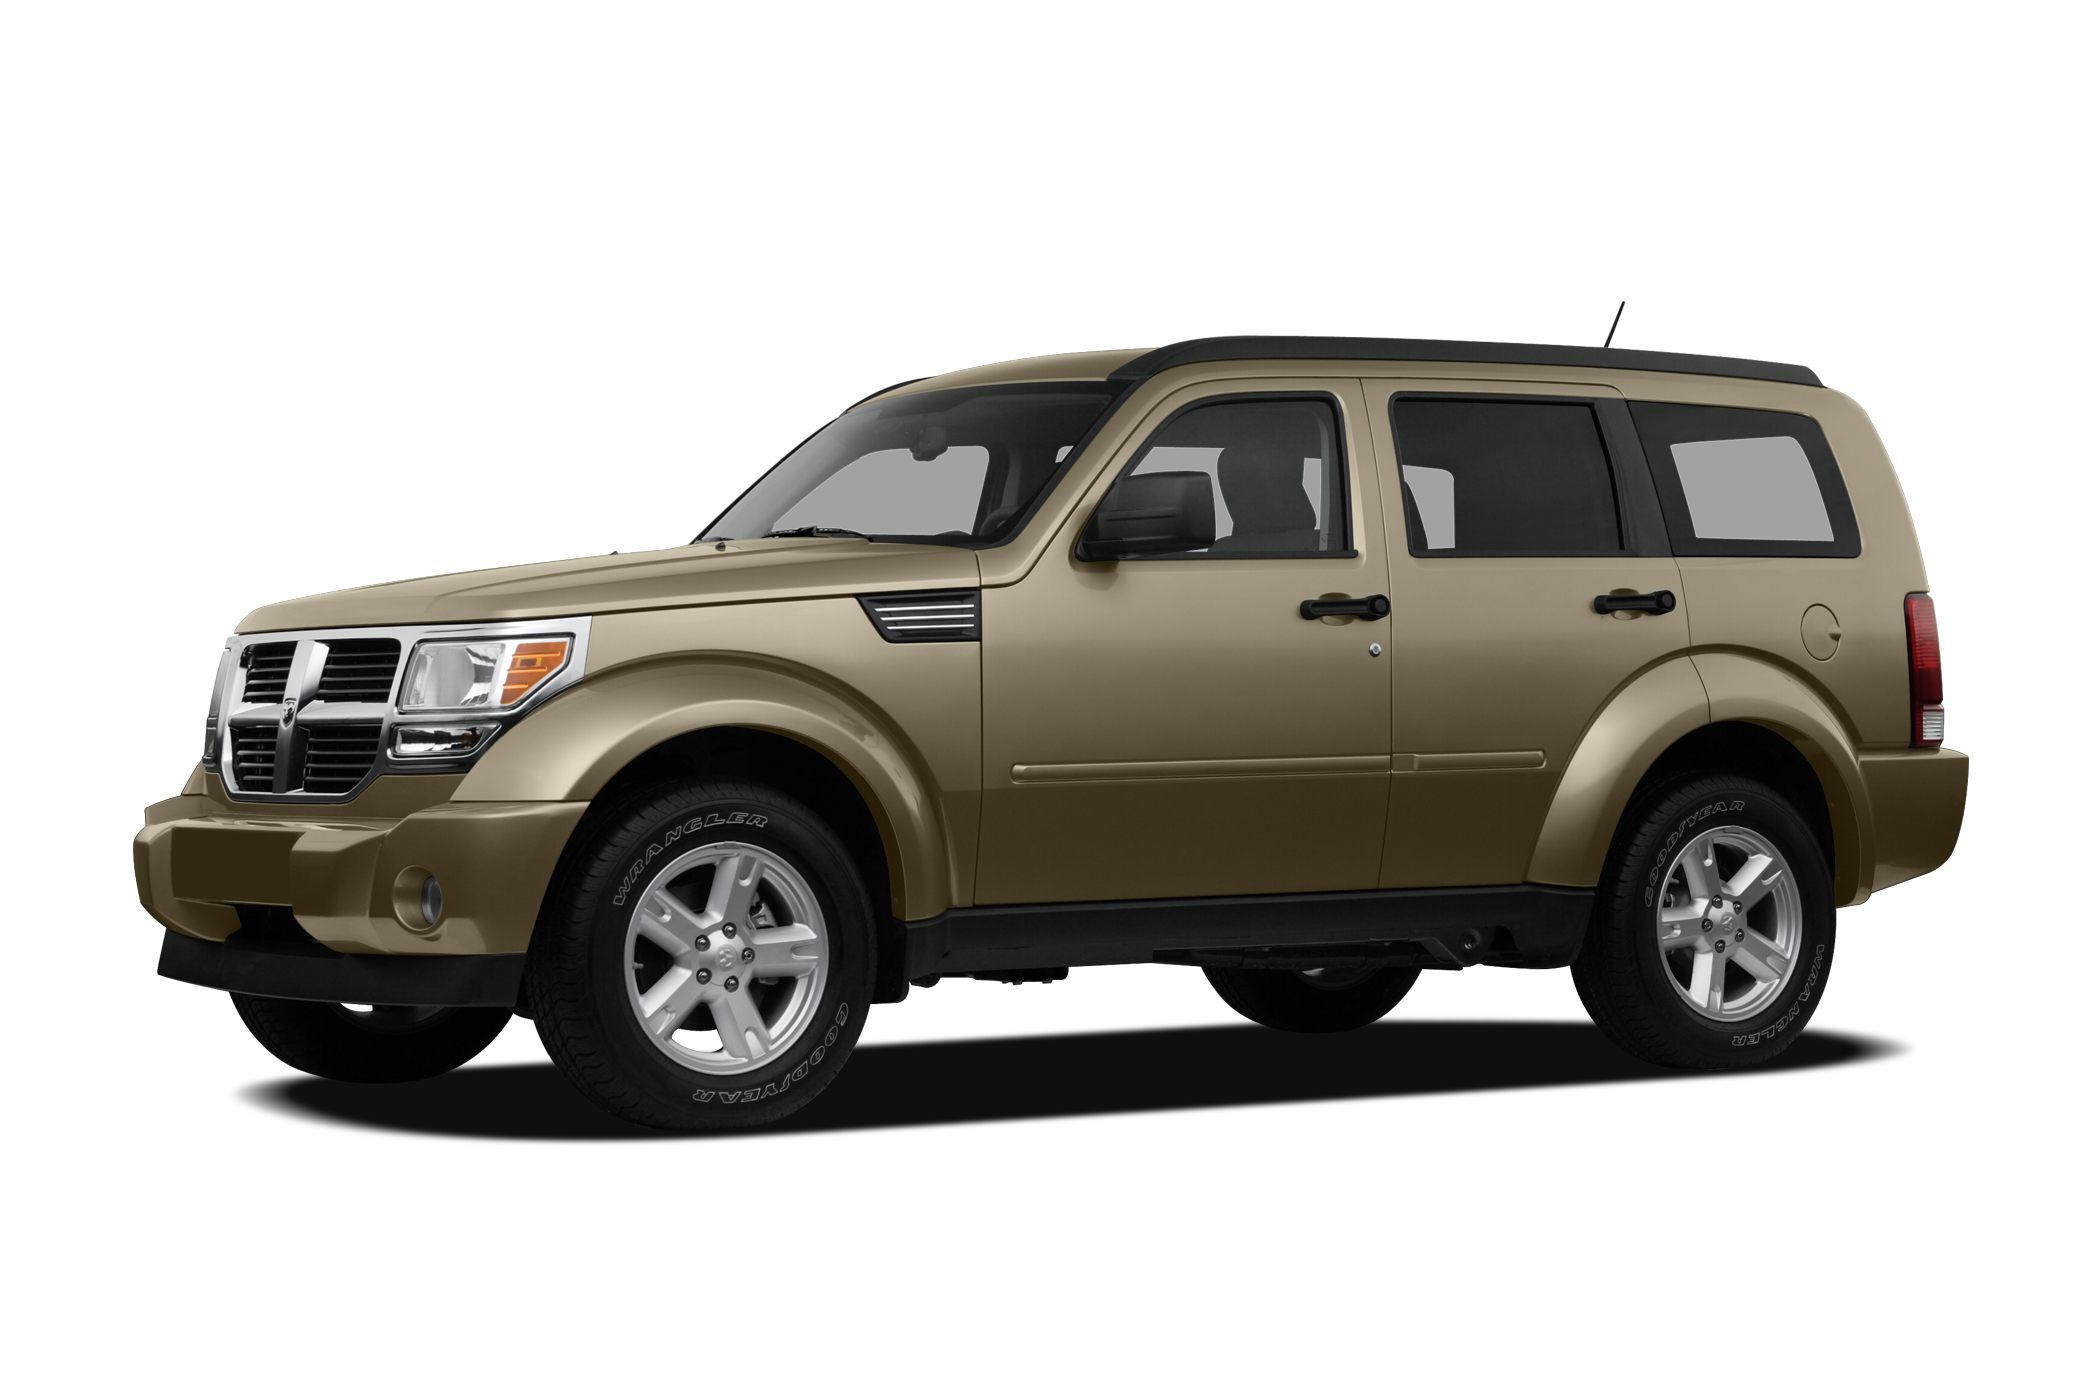 2008 Dodge Nitro SXT SUV for sale in Phoenix for $9,991 with 114,616 miles.